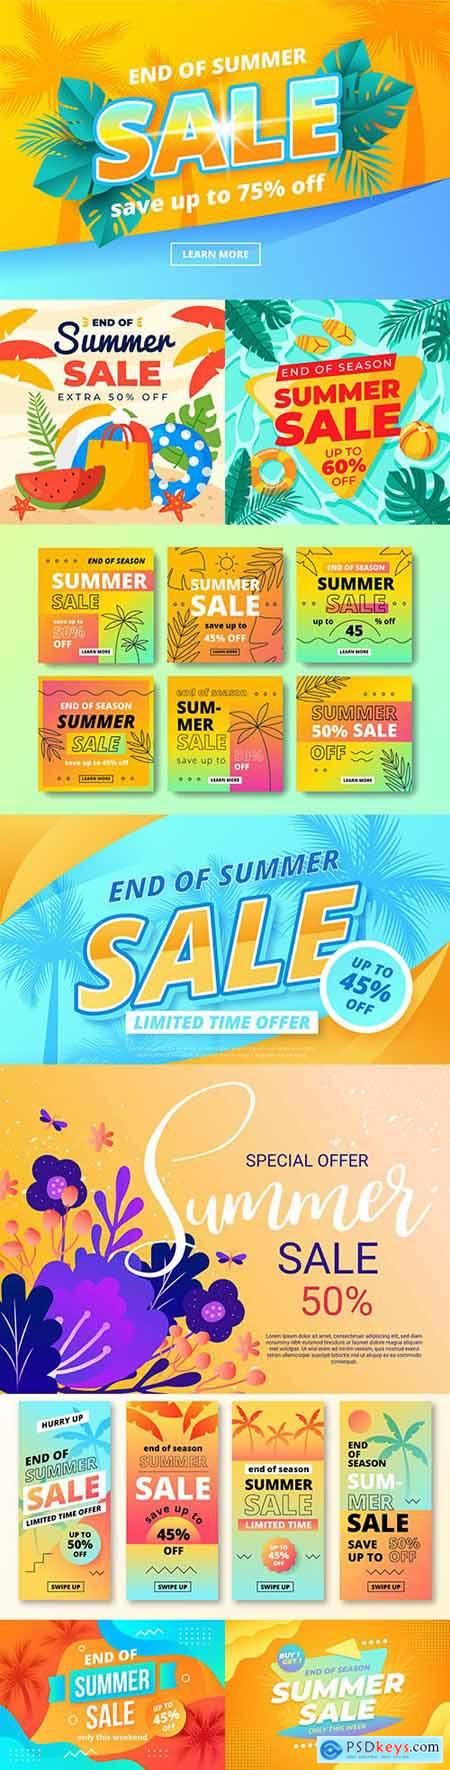 Summer sale at the end of season design flat style